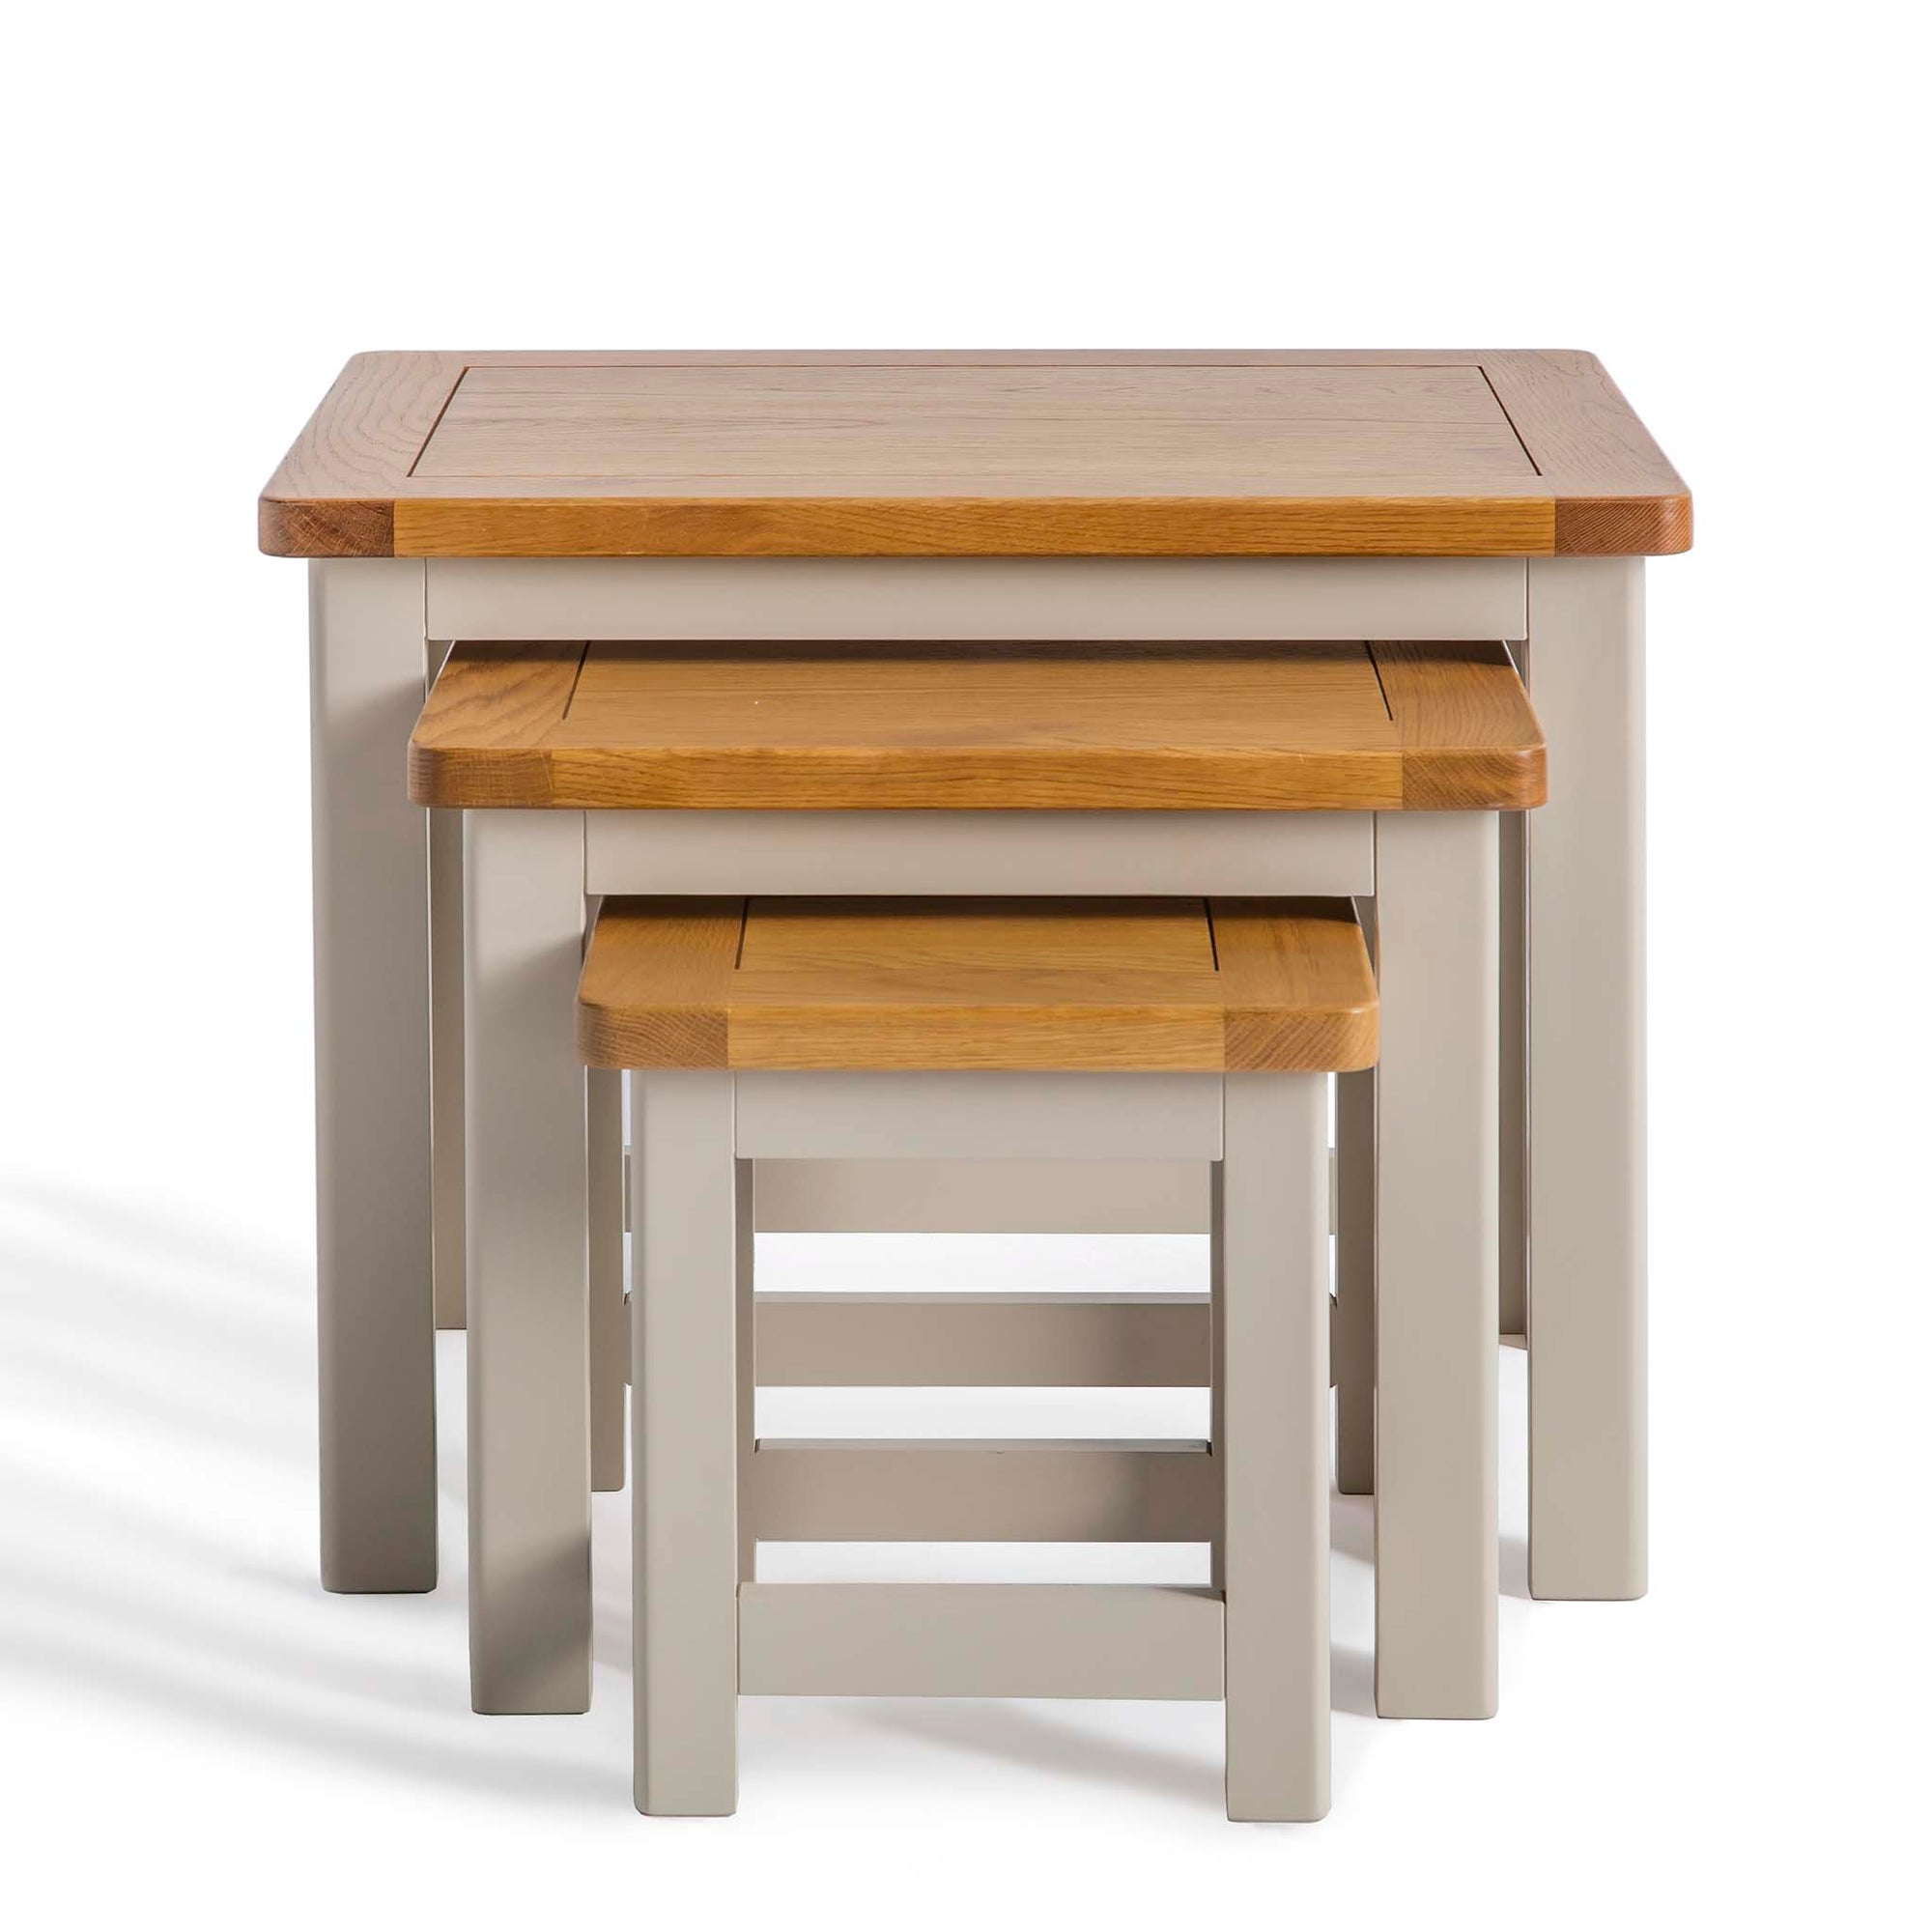 Padstow Grey Nest of 3 Tables with Oak Tops by Roseland Furniture